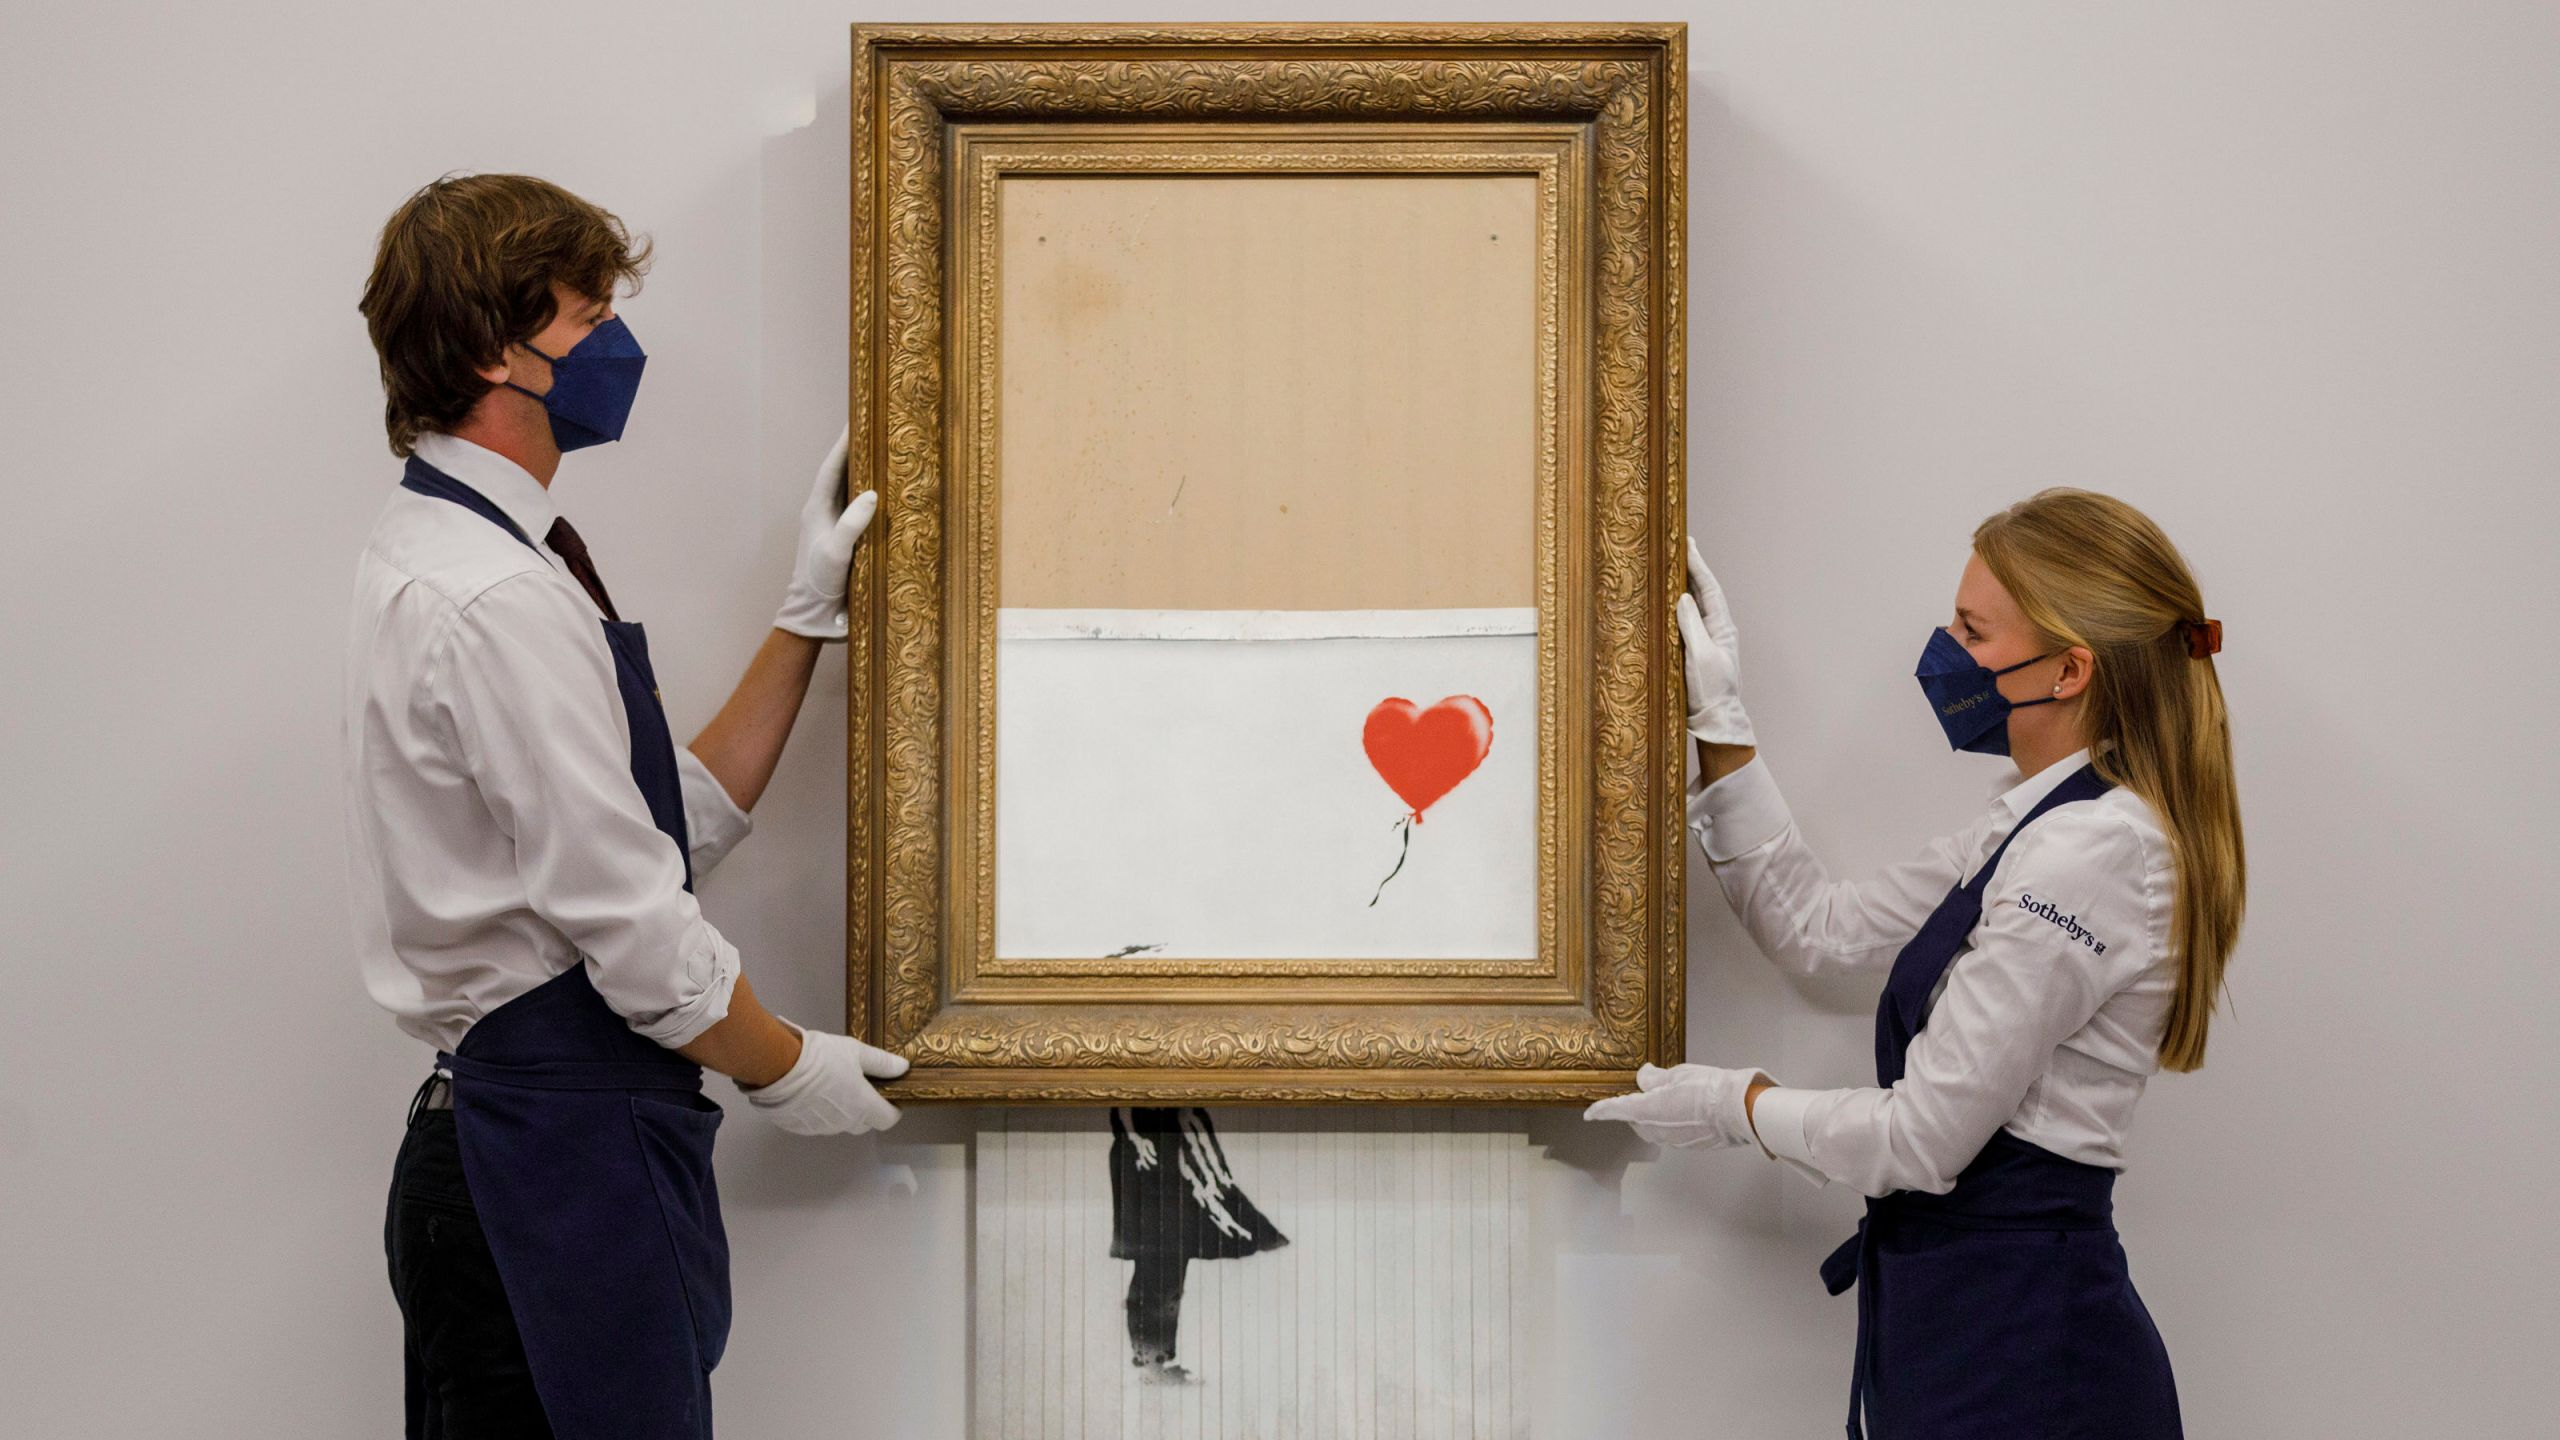 """In this handout photo provided by Sotheby's Auction House, the auction for Banksy's """"Love is the Bin"""" takes place in London, Thursday, Oct. 14, 2021. A work by British street artist Banksy that sensationally self-shredded just after it sold for $1.4 million has sold again for $25.4 million at an auction on Thursday. """"Love is in the Bin"""" was offered by Sotheby's in London, with a presale estimate of $5.5 million to $8.2 million. (Sotheby's Auction House via AP)"""